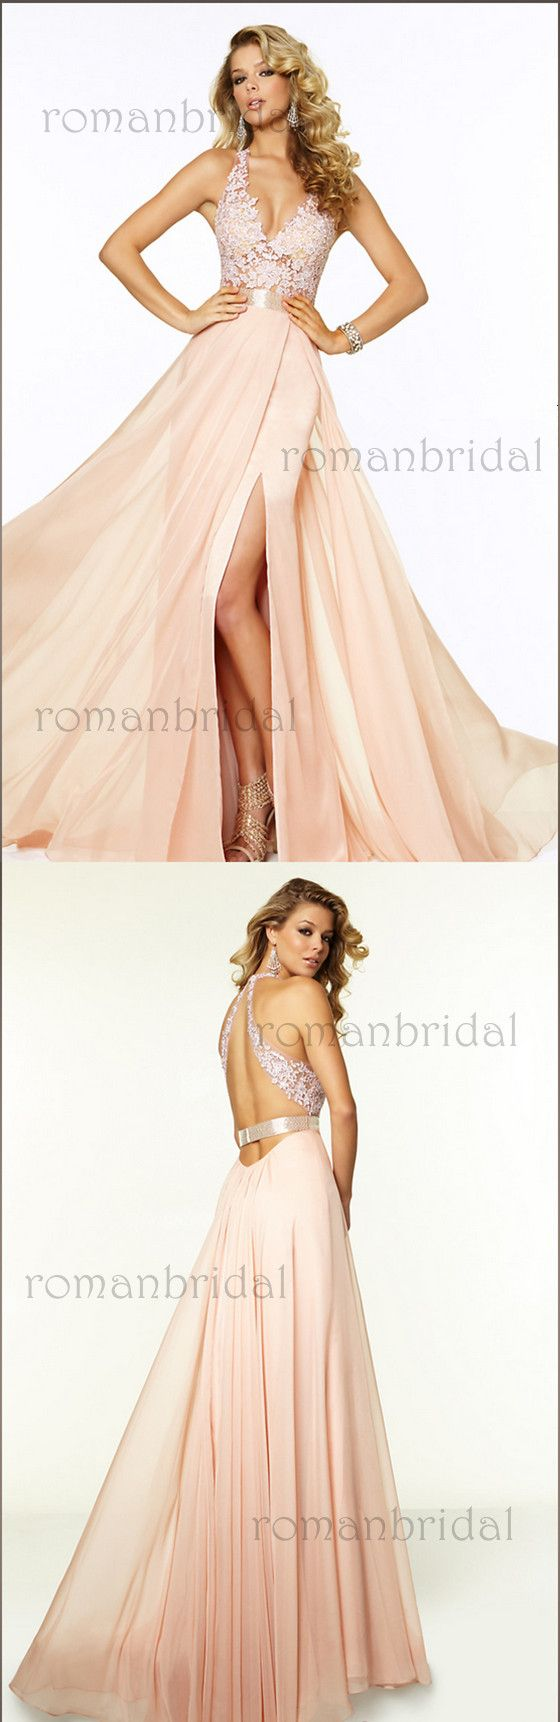 2018 Newest floor-length sleeveless Long V-Neck Lace Prom Gown, Amazing elegant Prom Dresses, PD0467